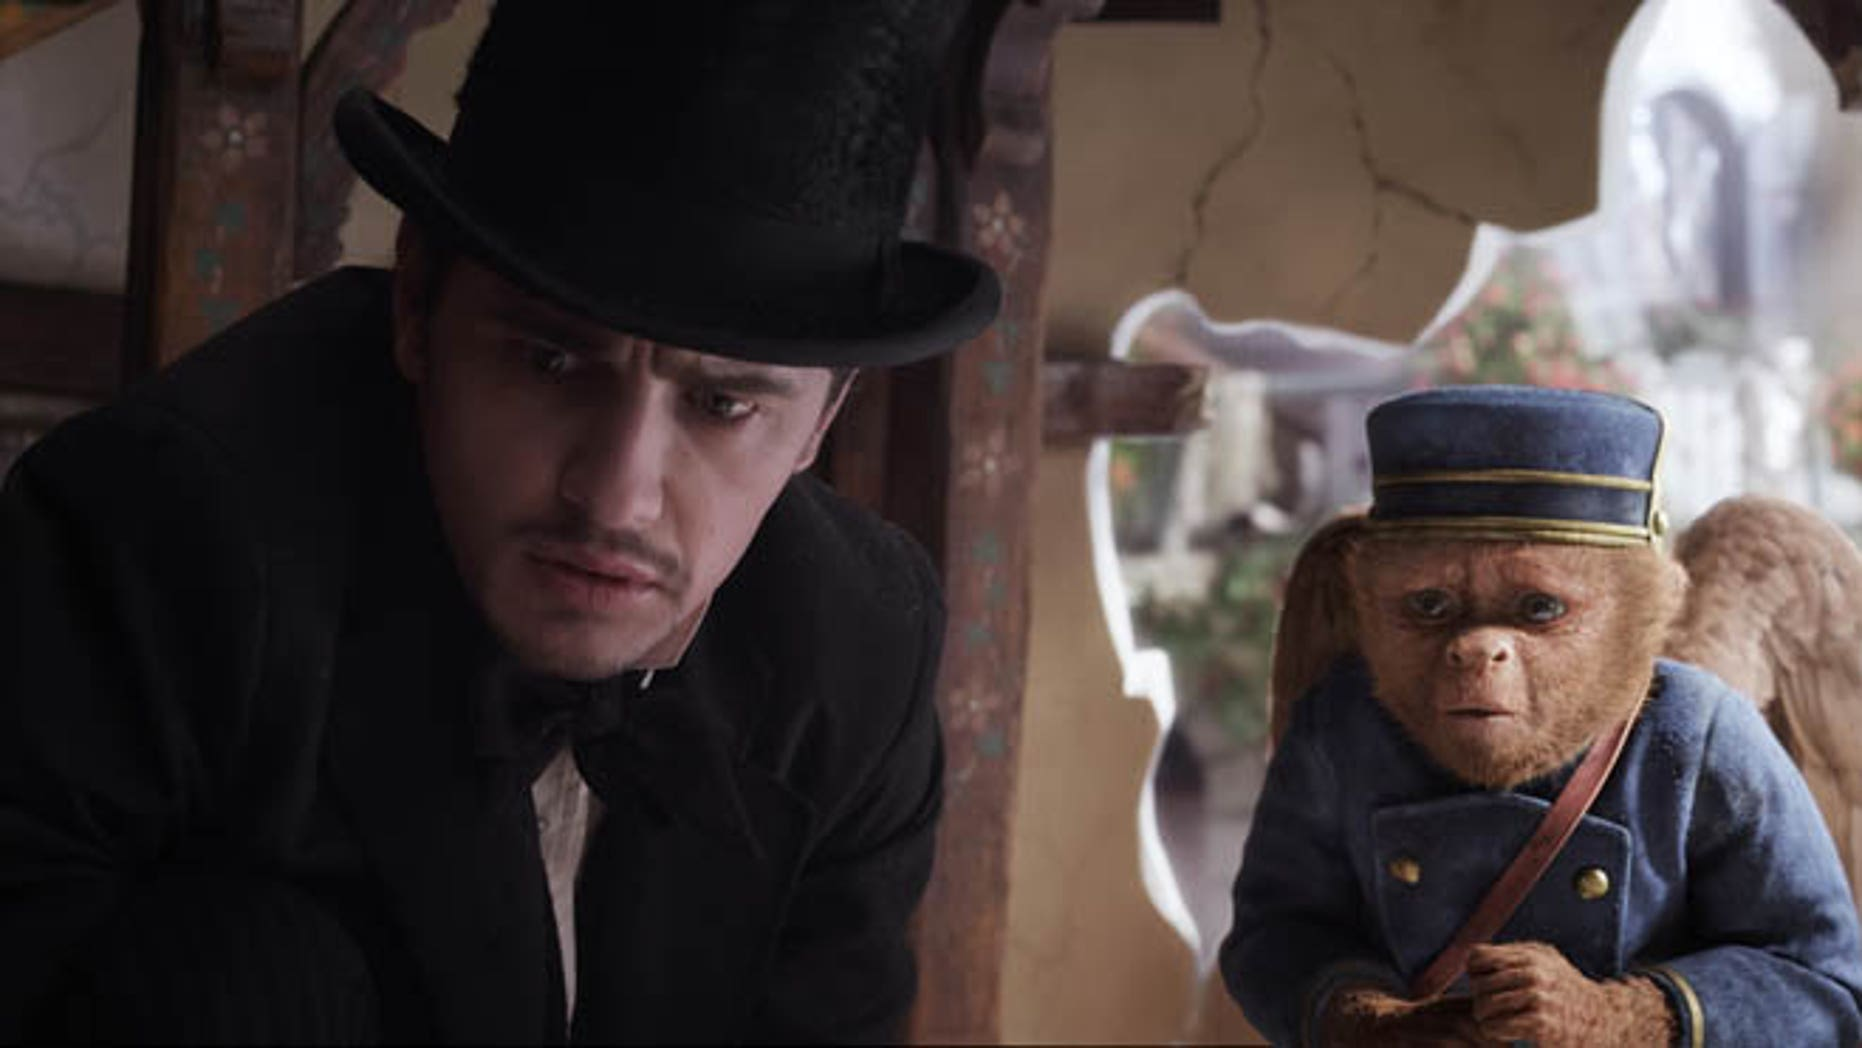 "This file film image provided by Disney Enterprises shows James Franco, as Oz, left, and the character Finley, voiced by Zach Braff, in a scene from ""Oz the Great and Powerful."" Oz the Great and Powerful is living up to its name at the box office. Walt Disney's 3-D blockbuster has led all films for the second week in a row, taking in $42.2 million according to studio estimates."